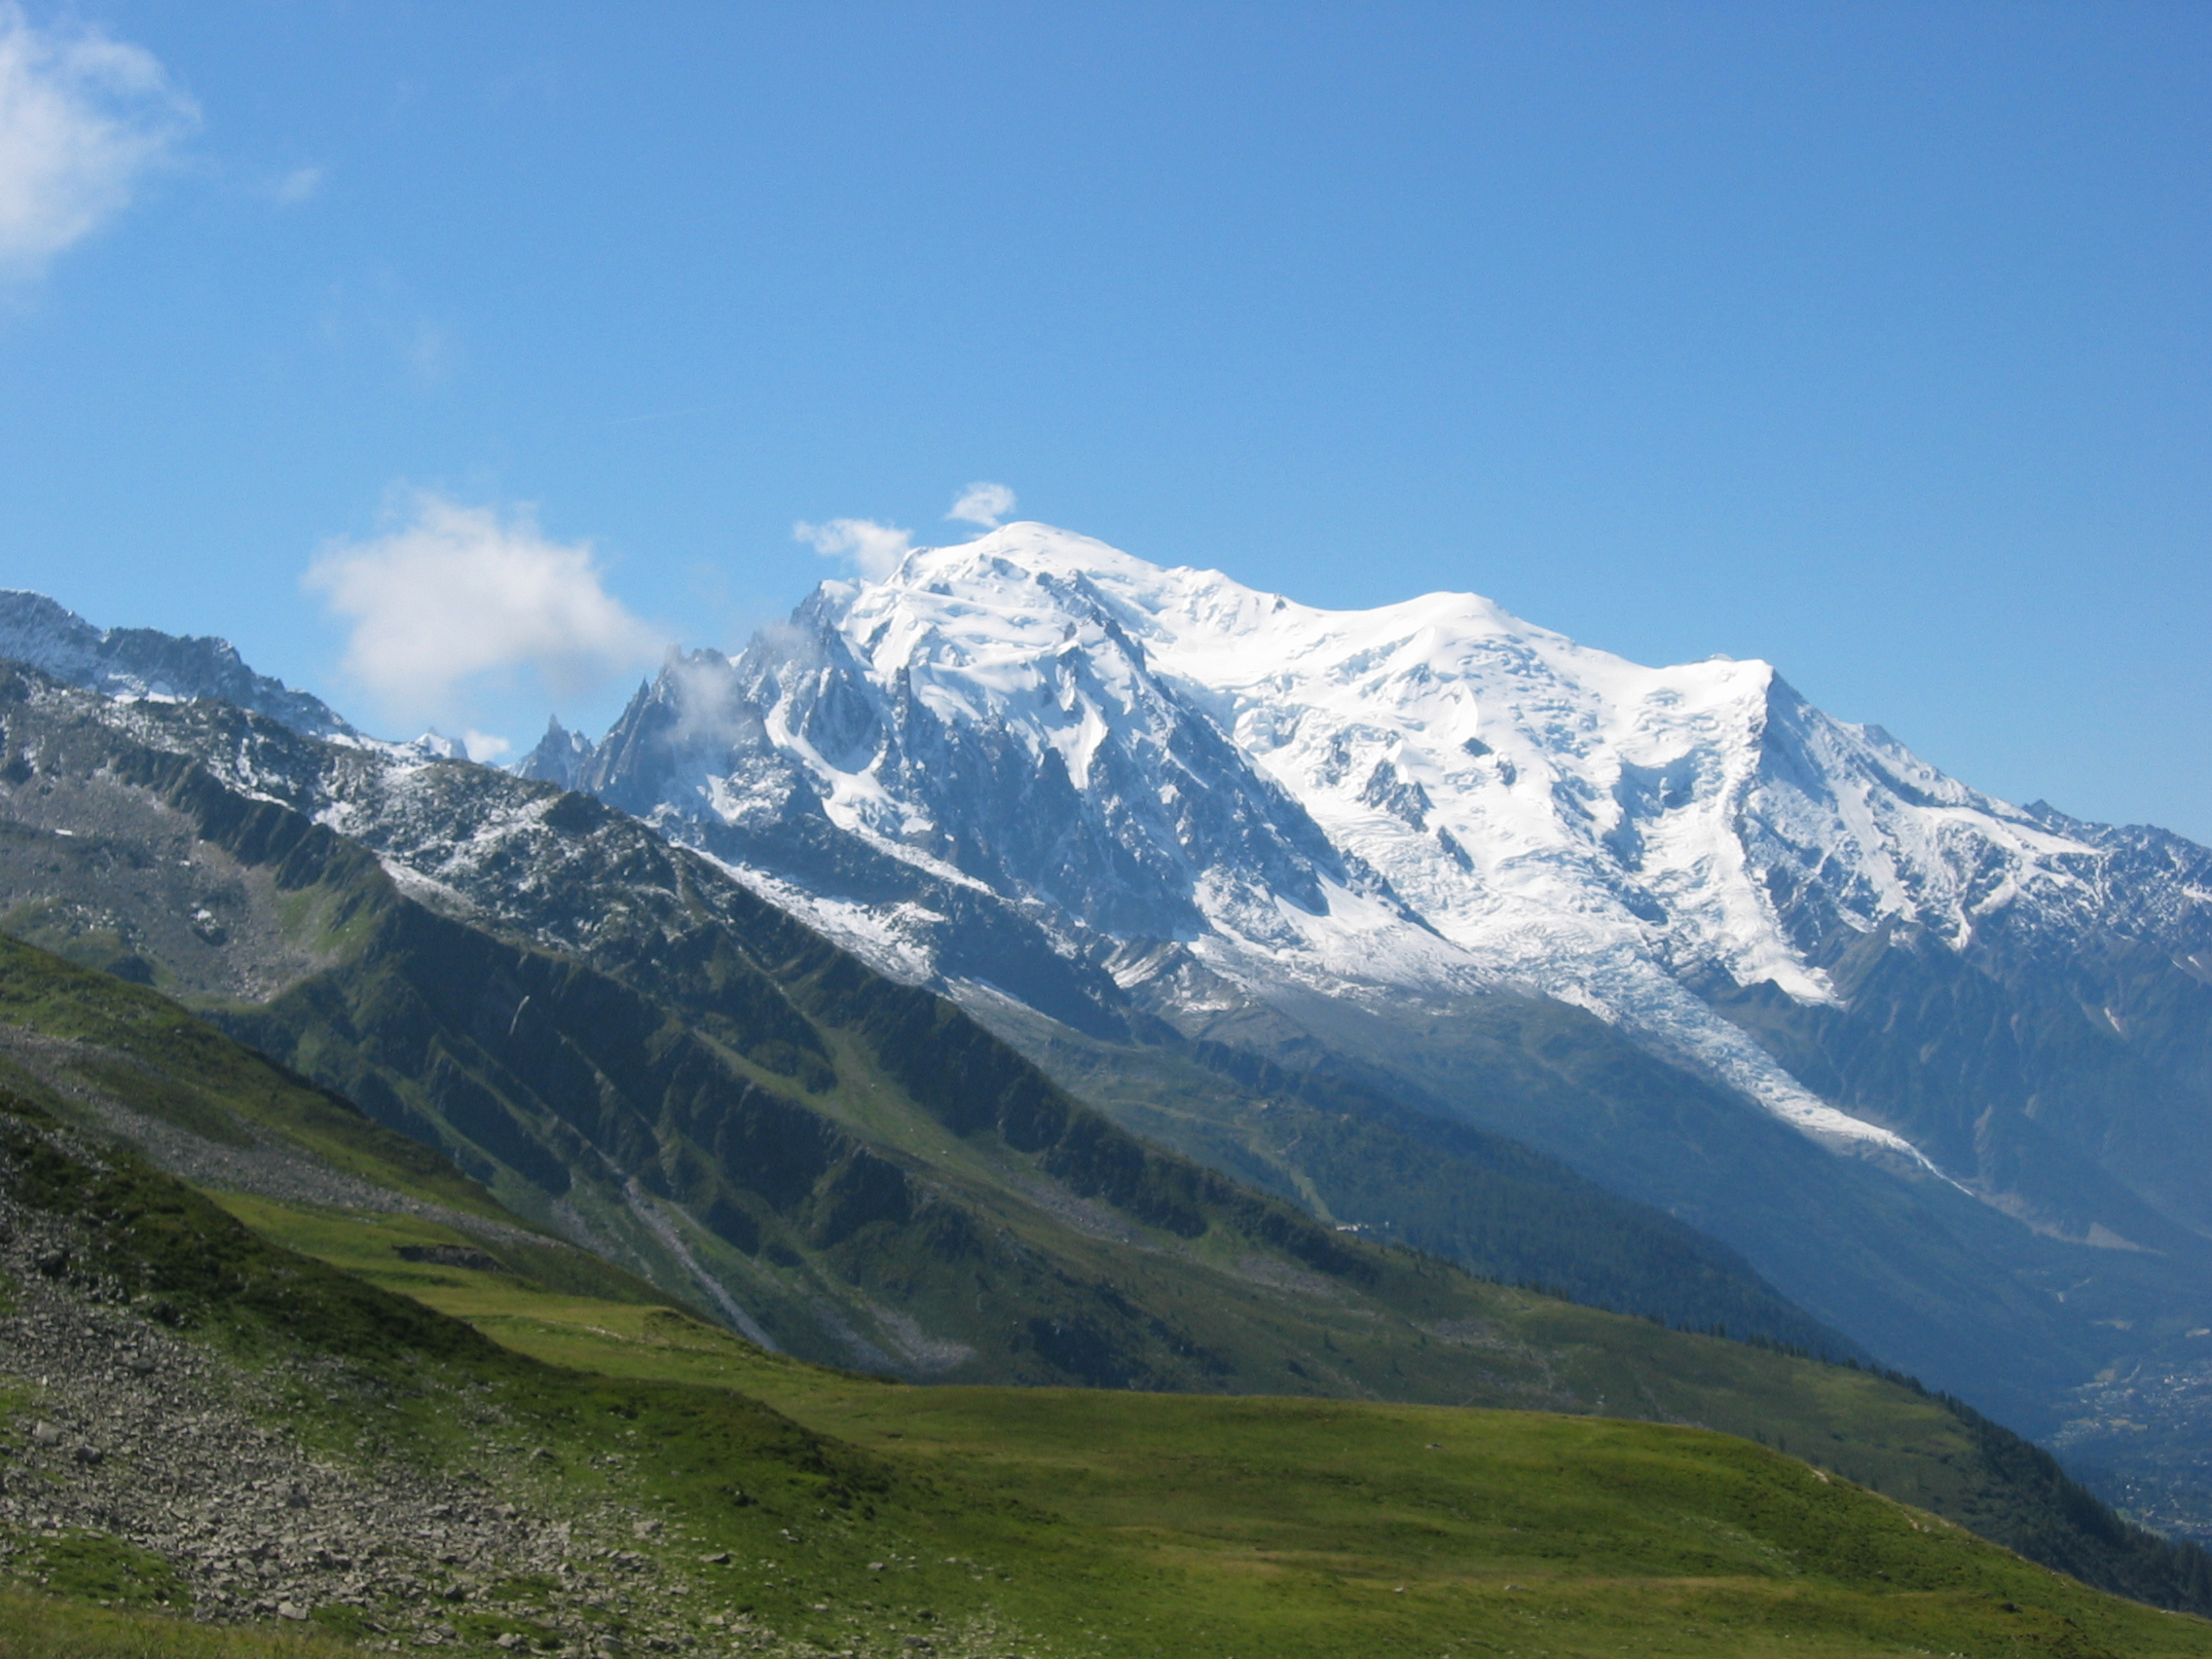 File:Mont Blanc 100 0068.JPG - Wikimedia Commons